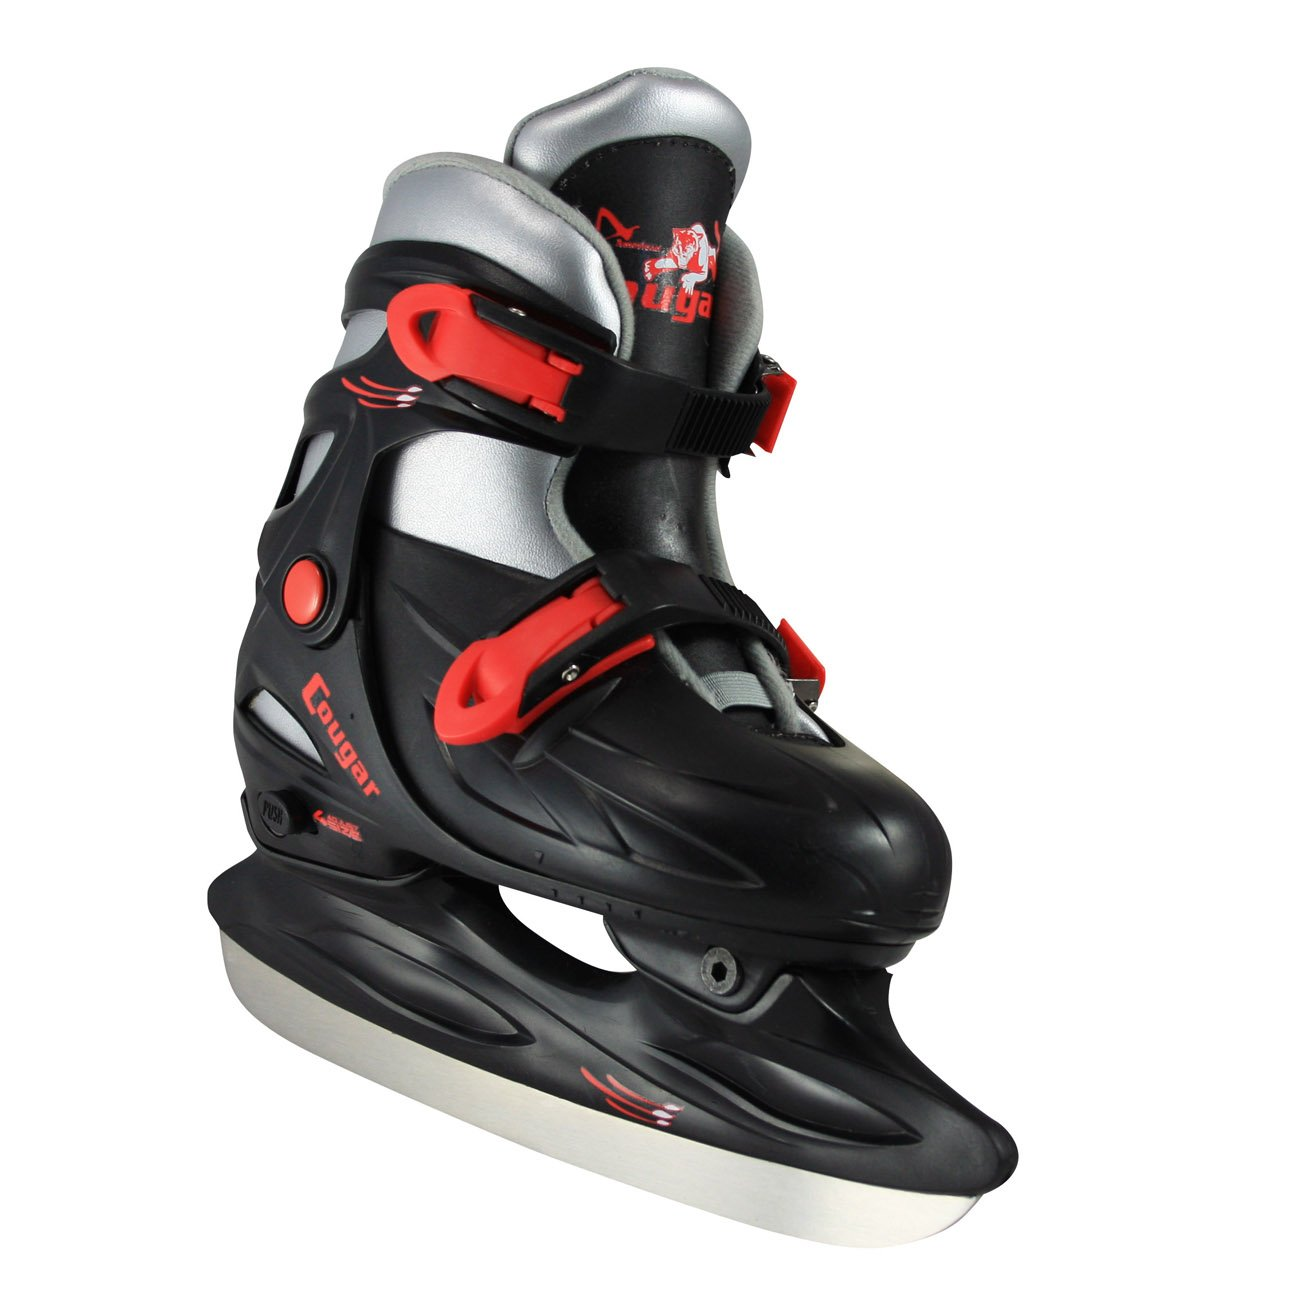 American Athletic Shoe Cougar Adjustable Hockey Skates, Black, X-Small/6-9 Youth by American Athletic